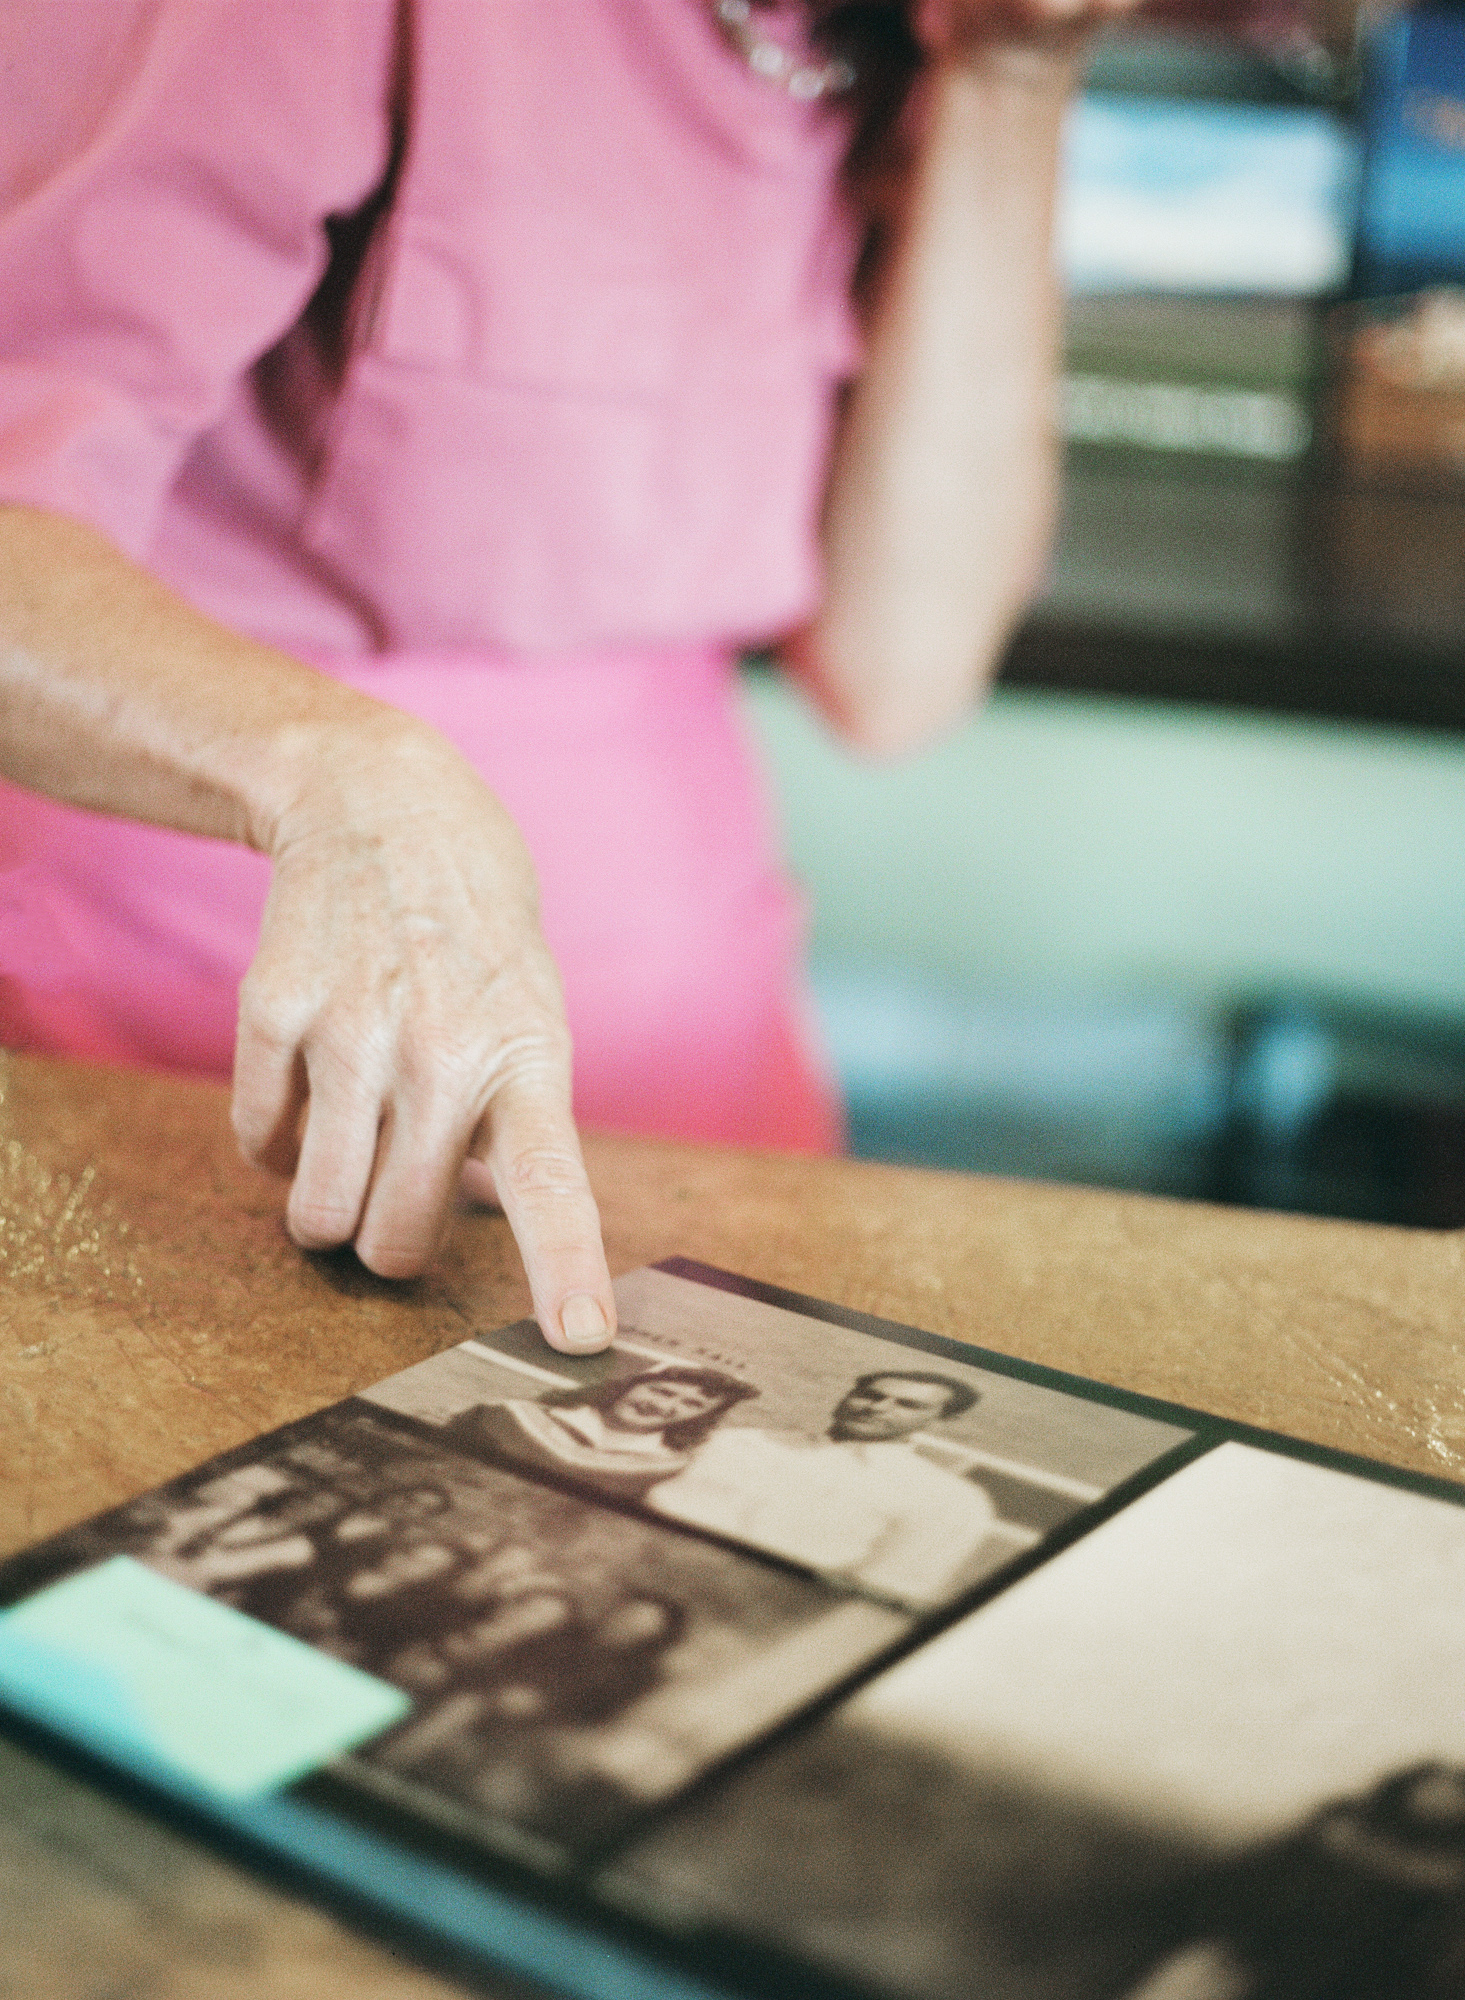 Sheree shows a family album from the settlement of her town in the cafe she works at. Her family settled the town, she has been driving since she was 7, and she knows all the best hot springs in the area. Fayette, population 249. Fall 2014.